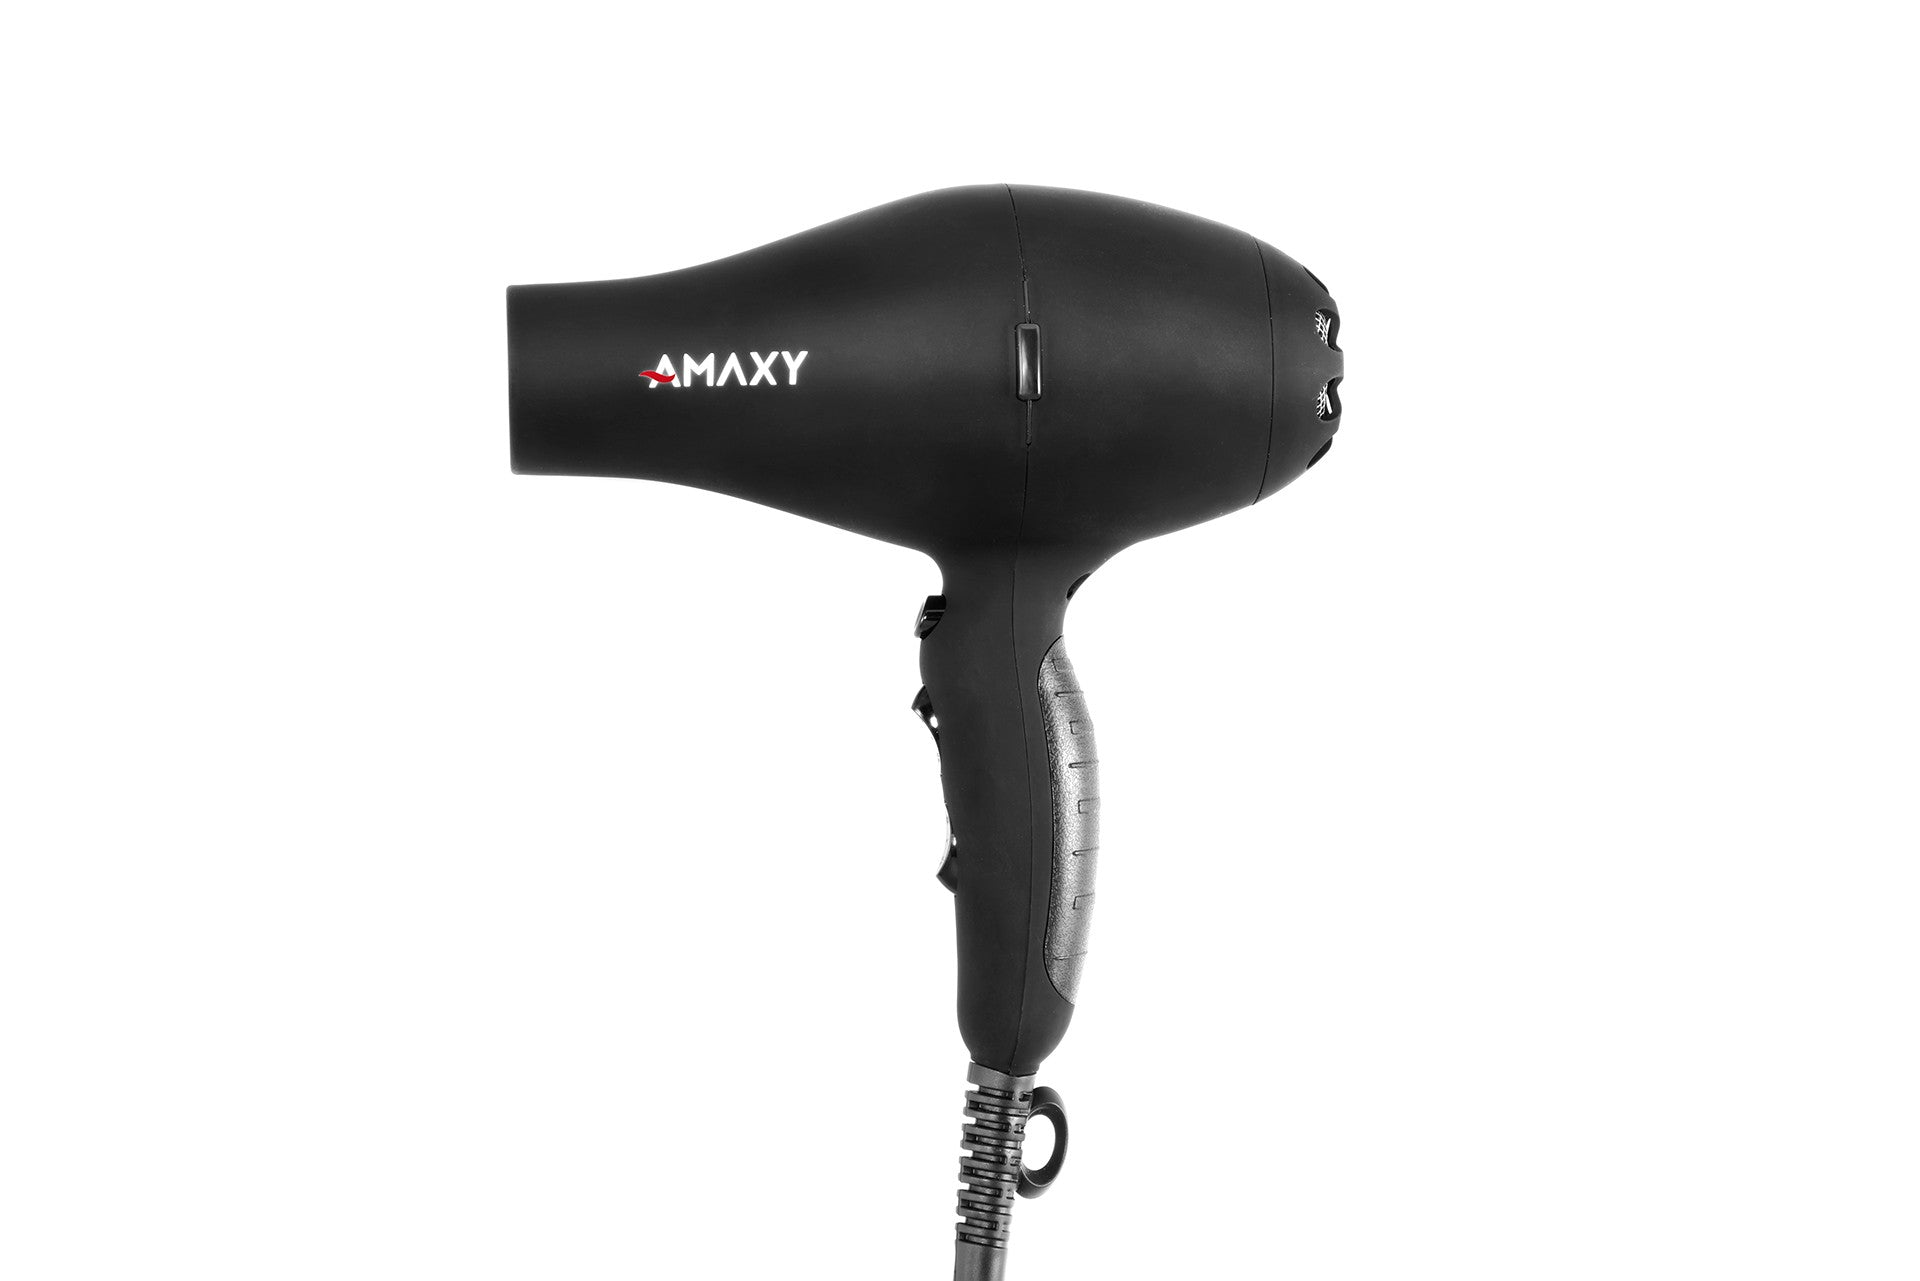 Honeycomb Ceramic Real Infrared Hair Dryer (1st Generation)